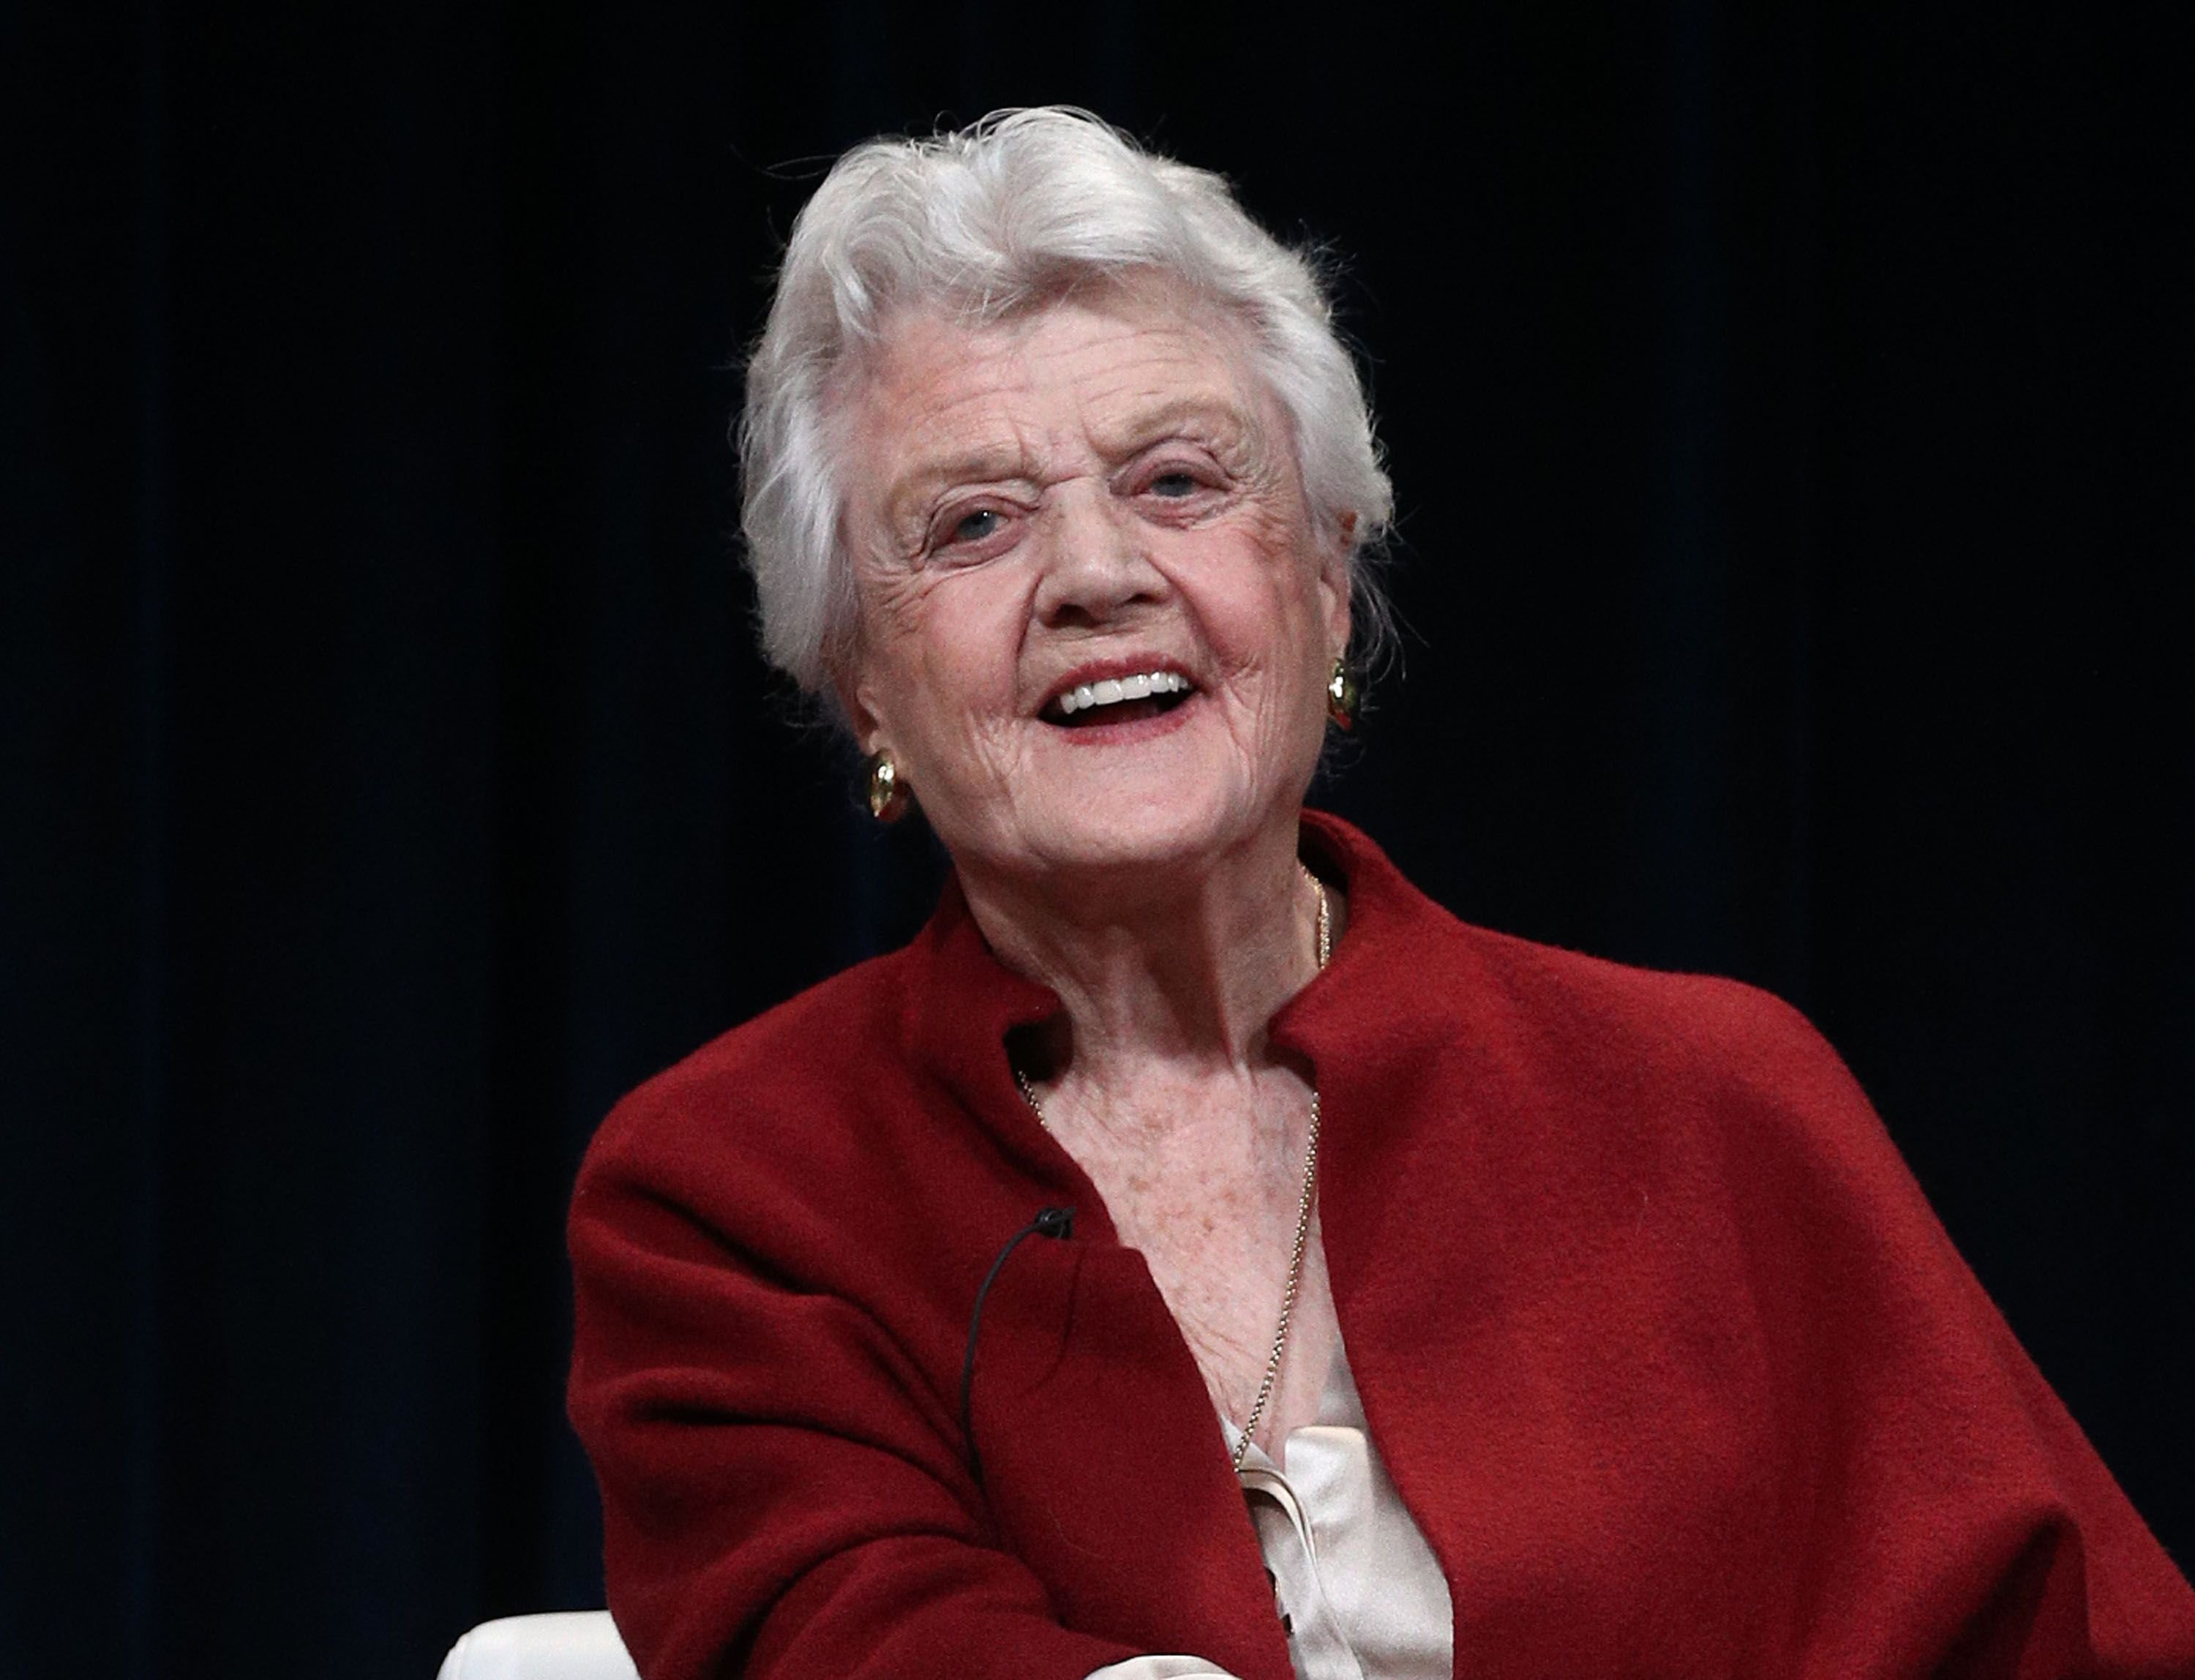 Actress Angela Lansbury speaks at the PBS segment of the 2018 Winter Television Critics Association Press Tour at The Langham Huntington, Pasadena on January 16, 2018 | Photo: Getty Images